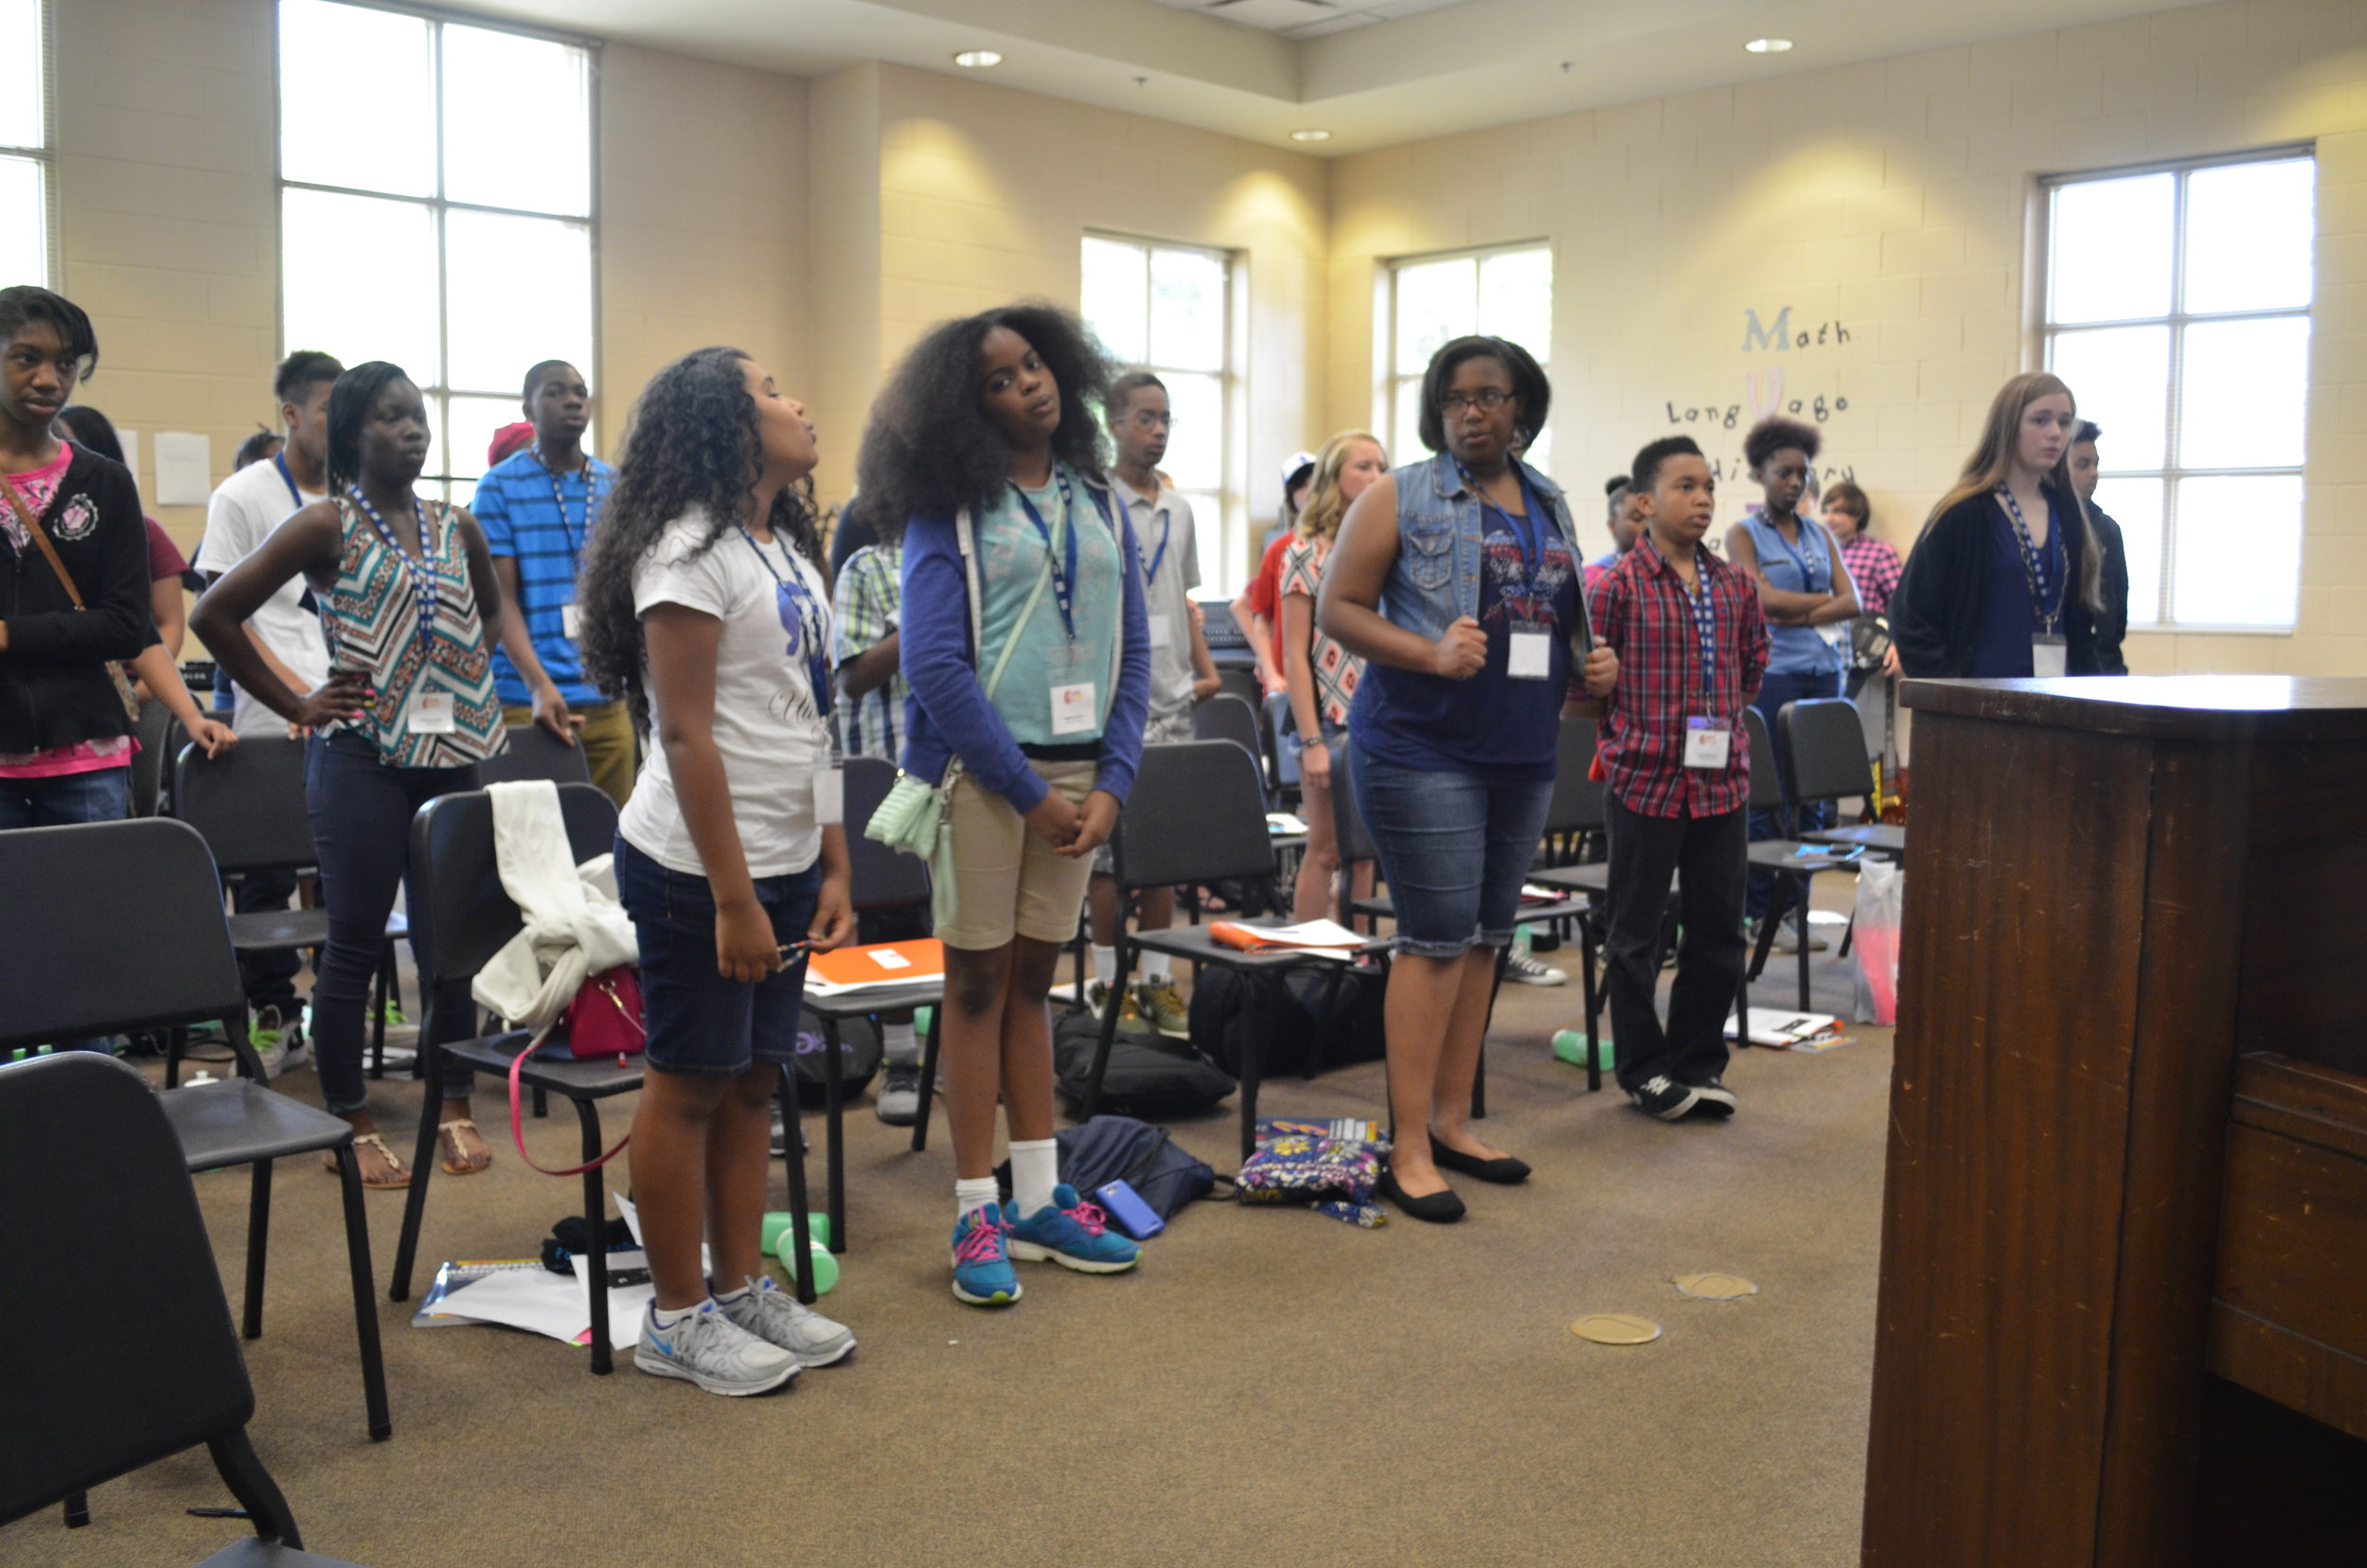 Campers Illyana Billups, Malaika Alilaw, Gena Tripp, Artis Johnston, and Trinity Ridgeway during vocal warmups